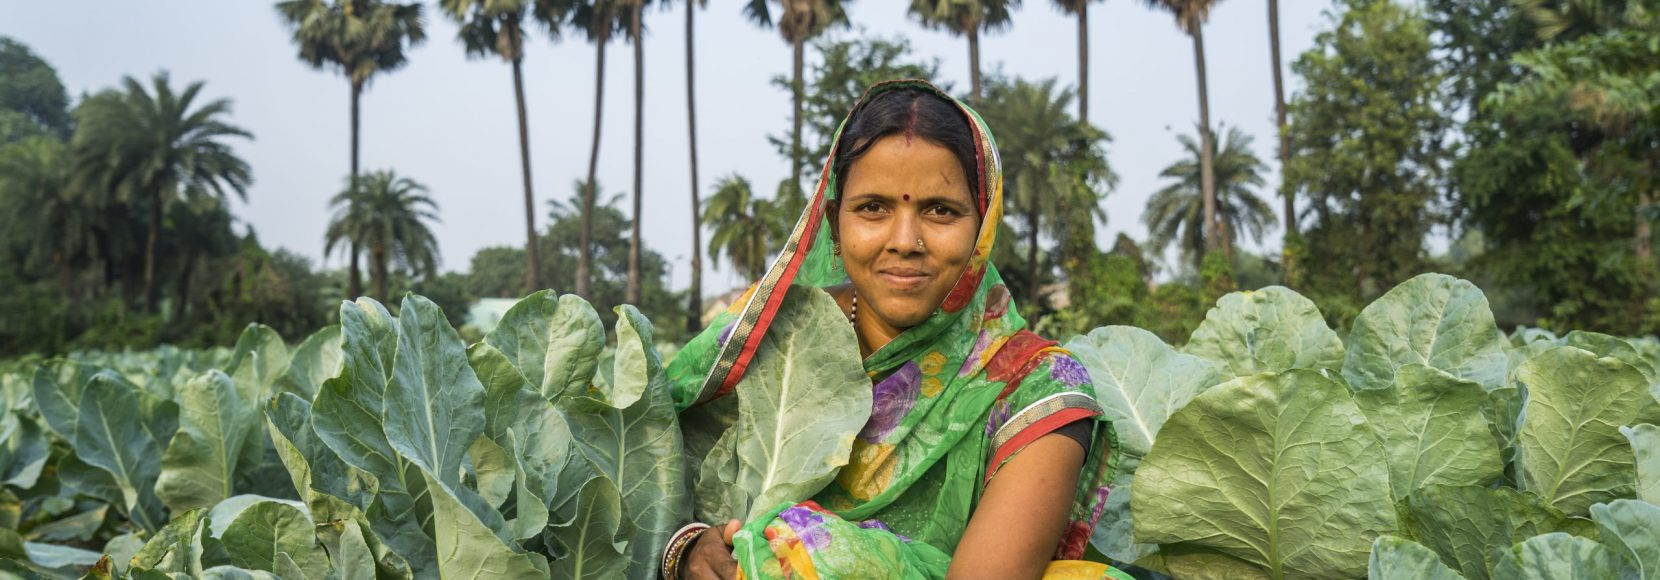 Take TechnoServe's food security quiz. Image of a vegetable farmer in India kneeling near her crops.